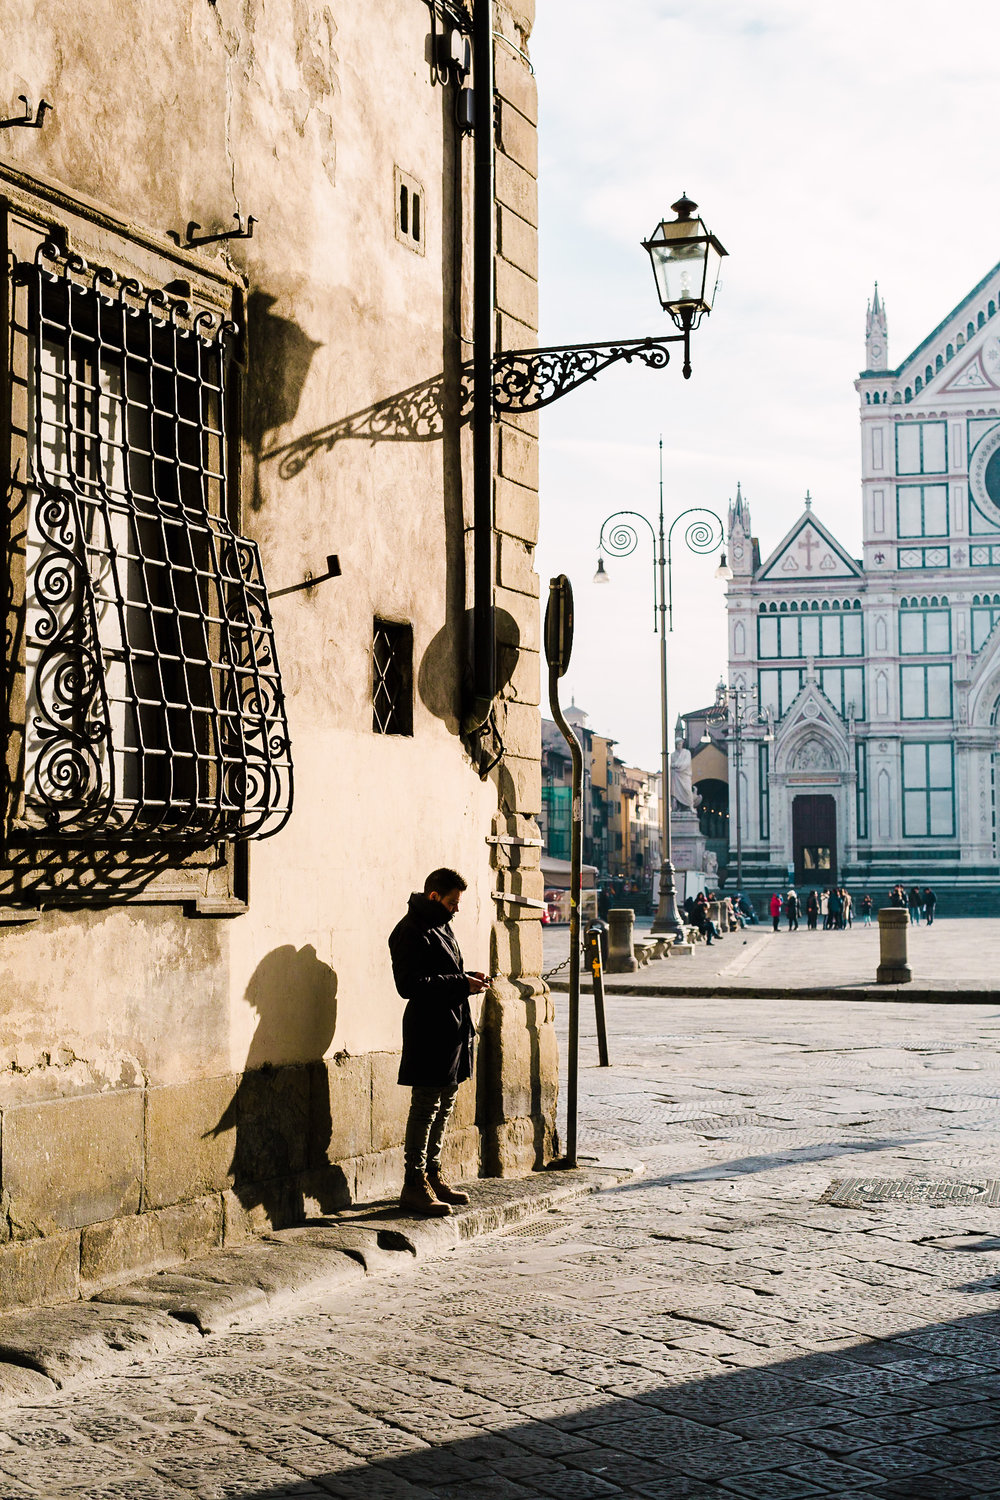 Man Standing Near Santa Croce (1 of 1).jpg